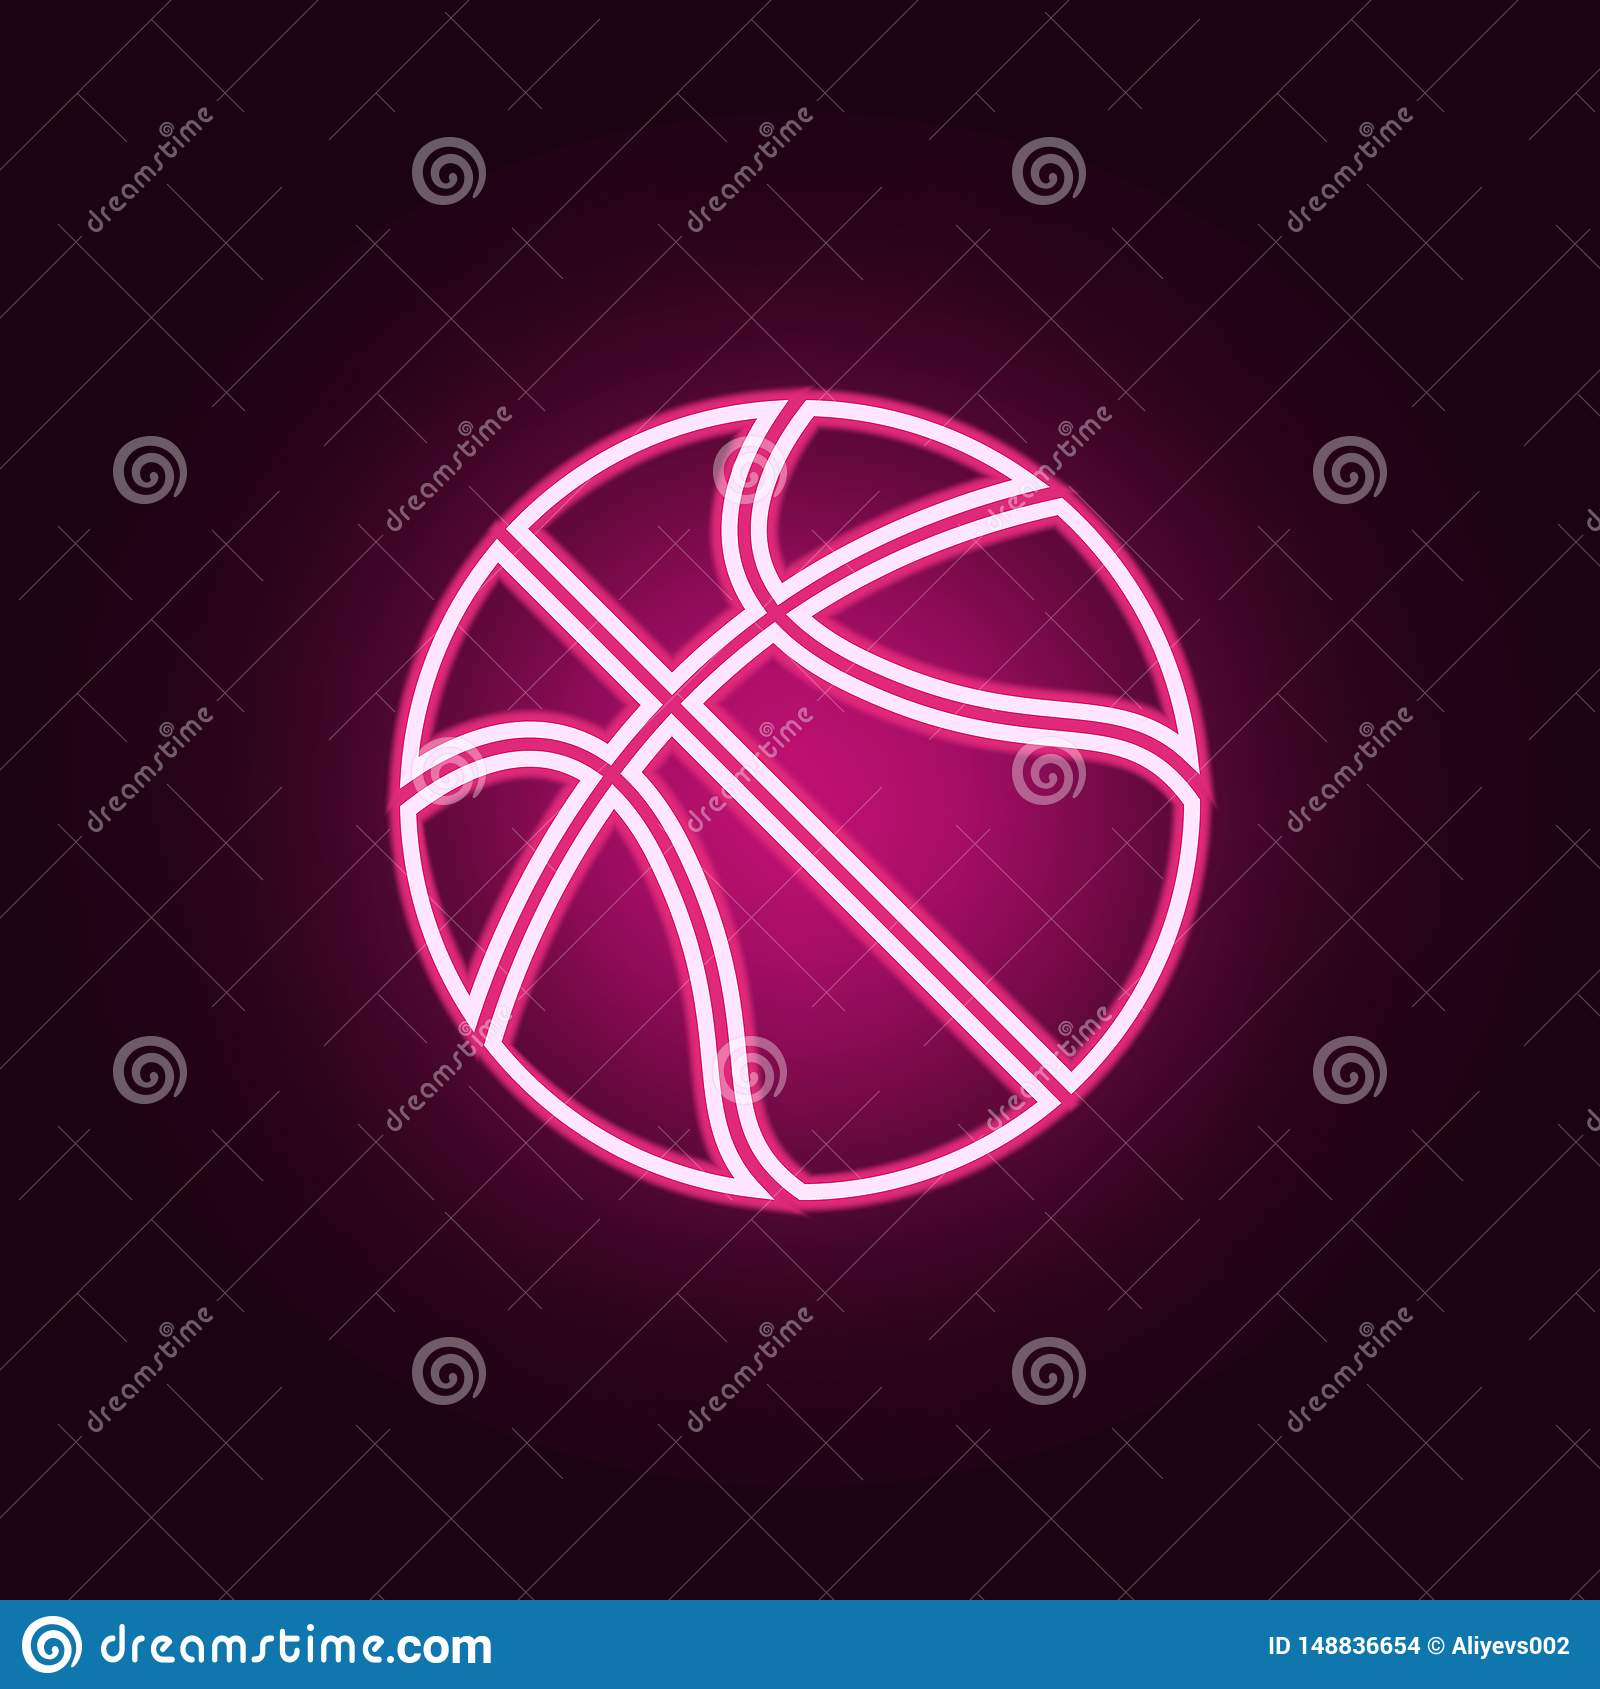 basketball neon icon. Elements of web set. Simple icon for websites, web design, mobile app, info graphics